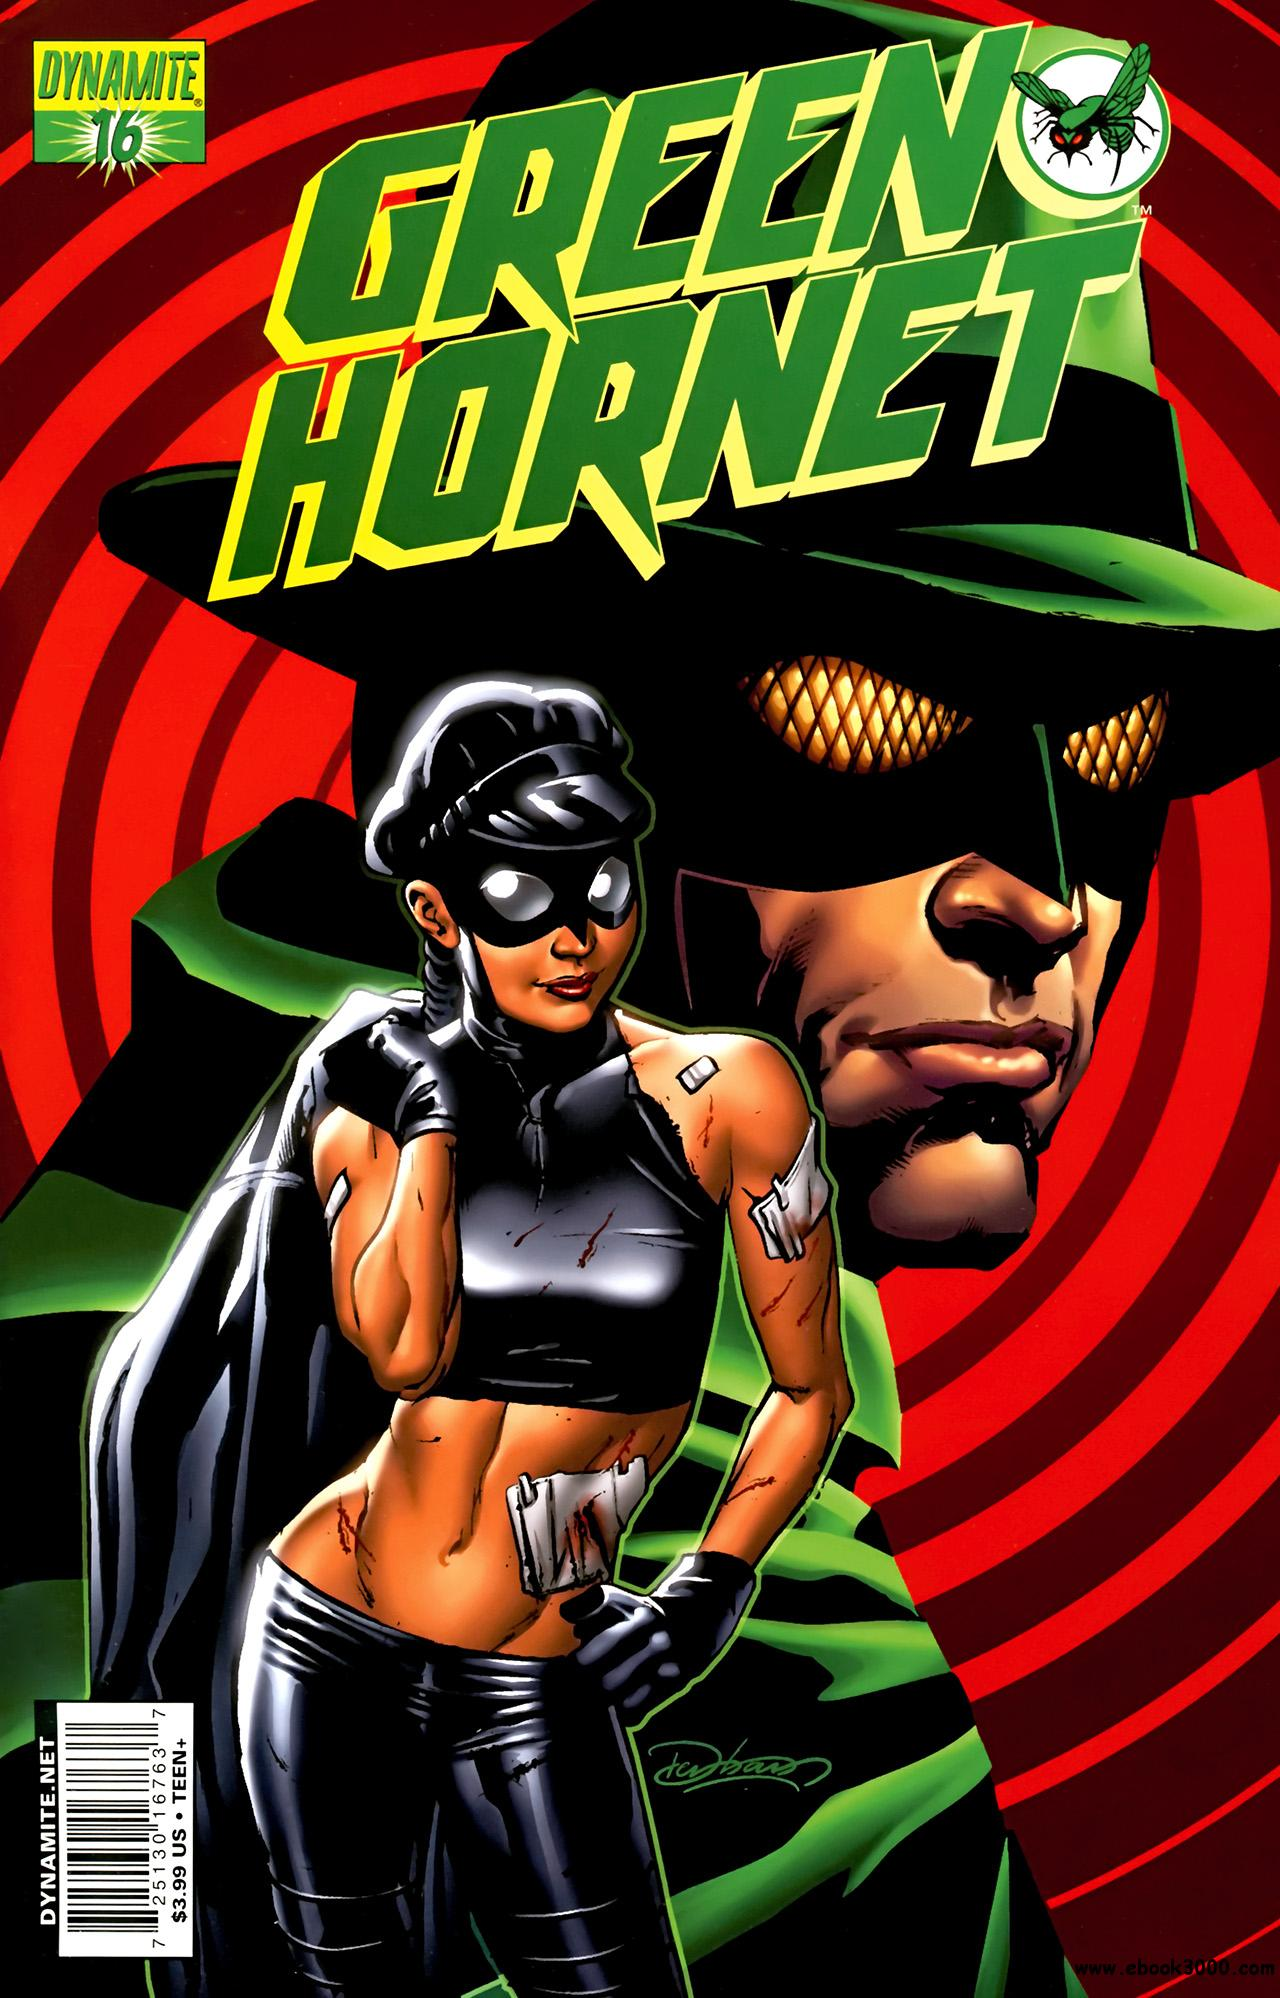 Green Hornet #16 (2011) free download